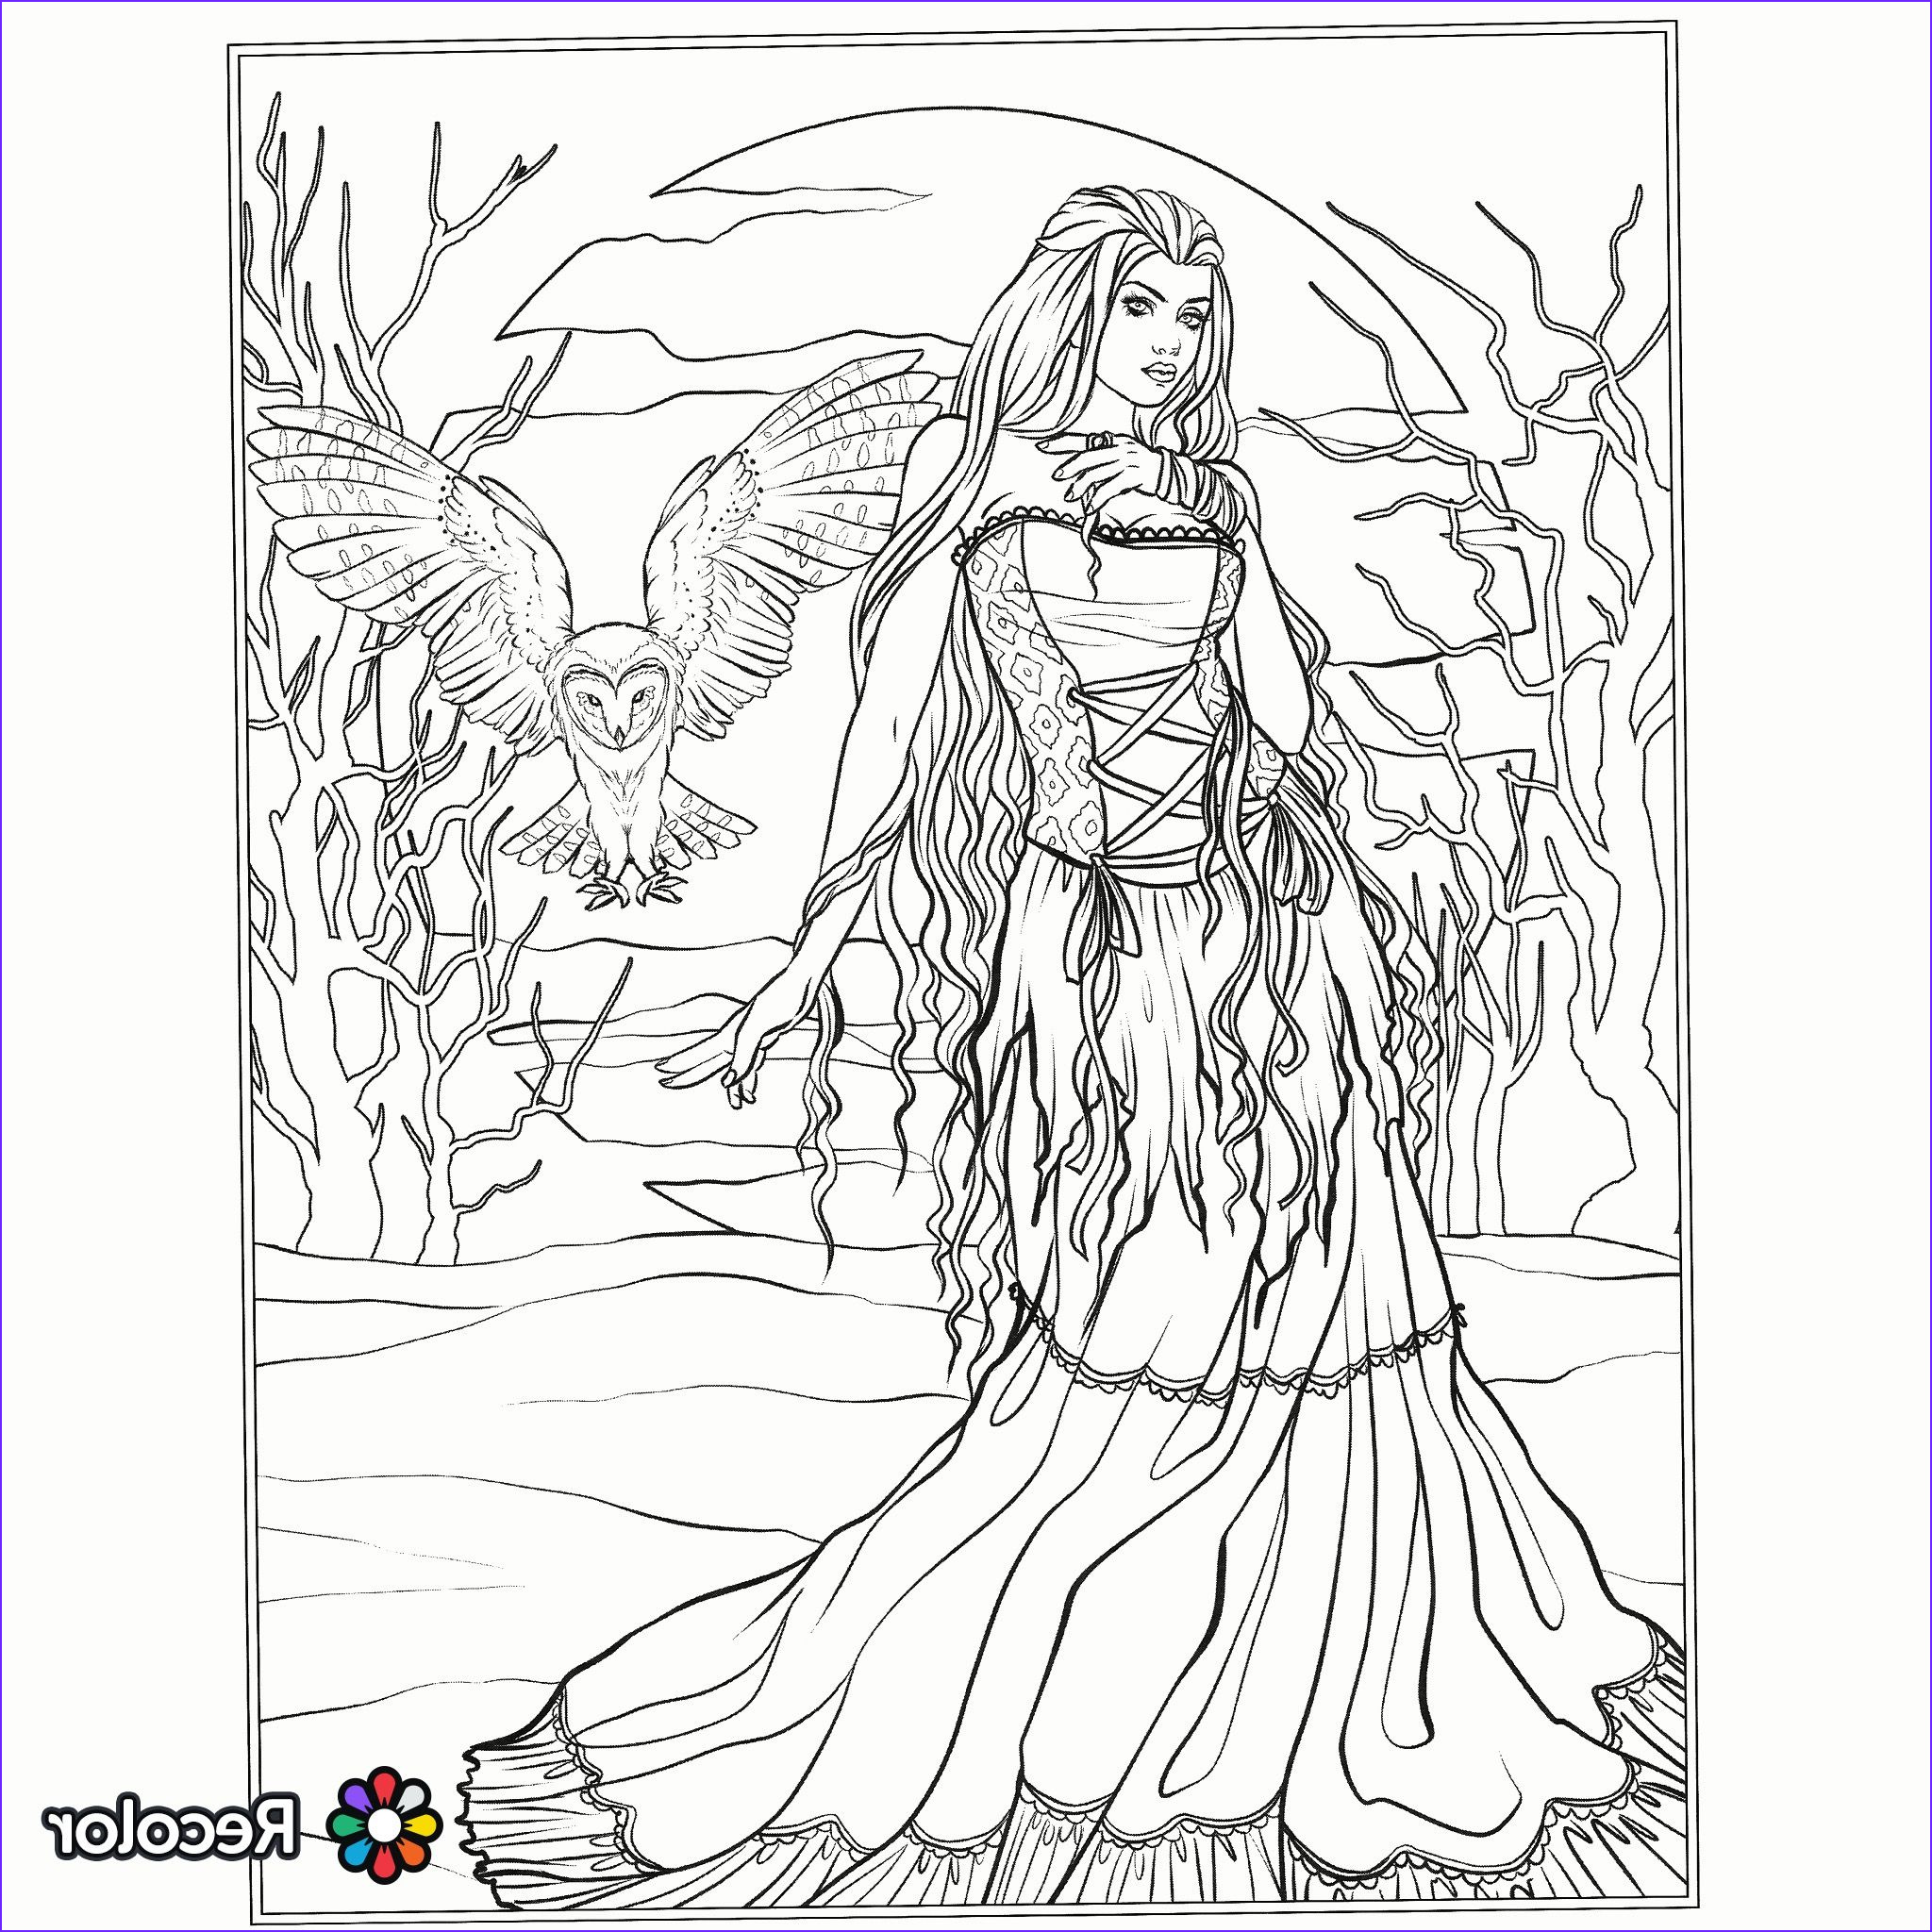 Dark Coloring Pages Inspirational Gallery Halloween Gothic Coloring Page